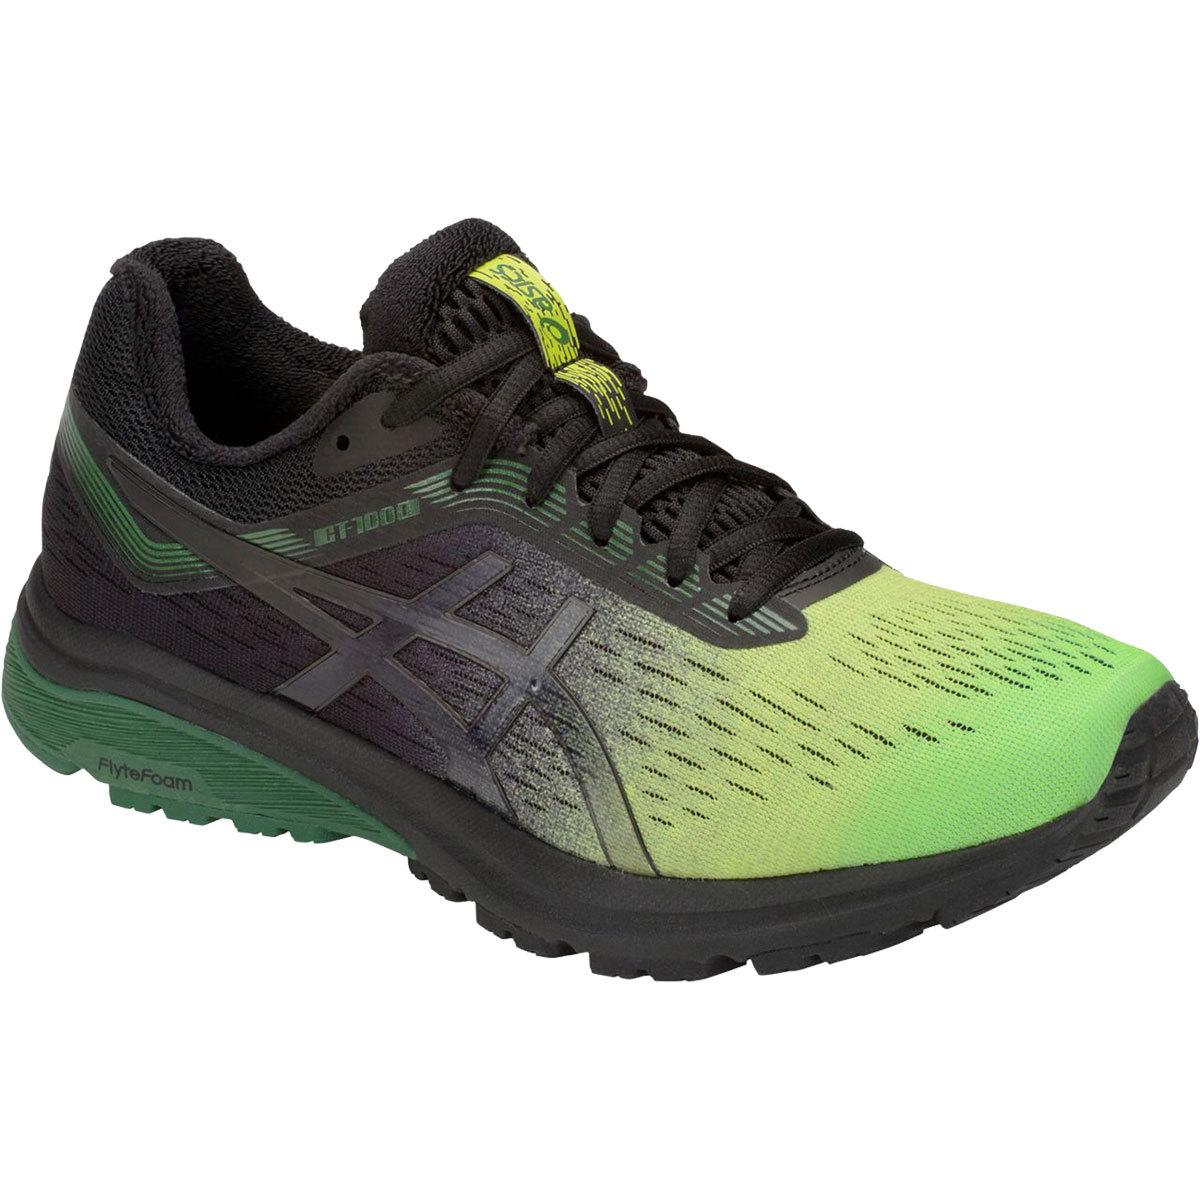 Asics Men's Gt-1000 7 Sp Running Shoes - Green, 12